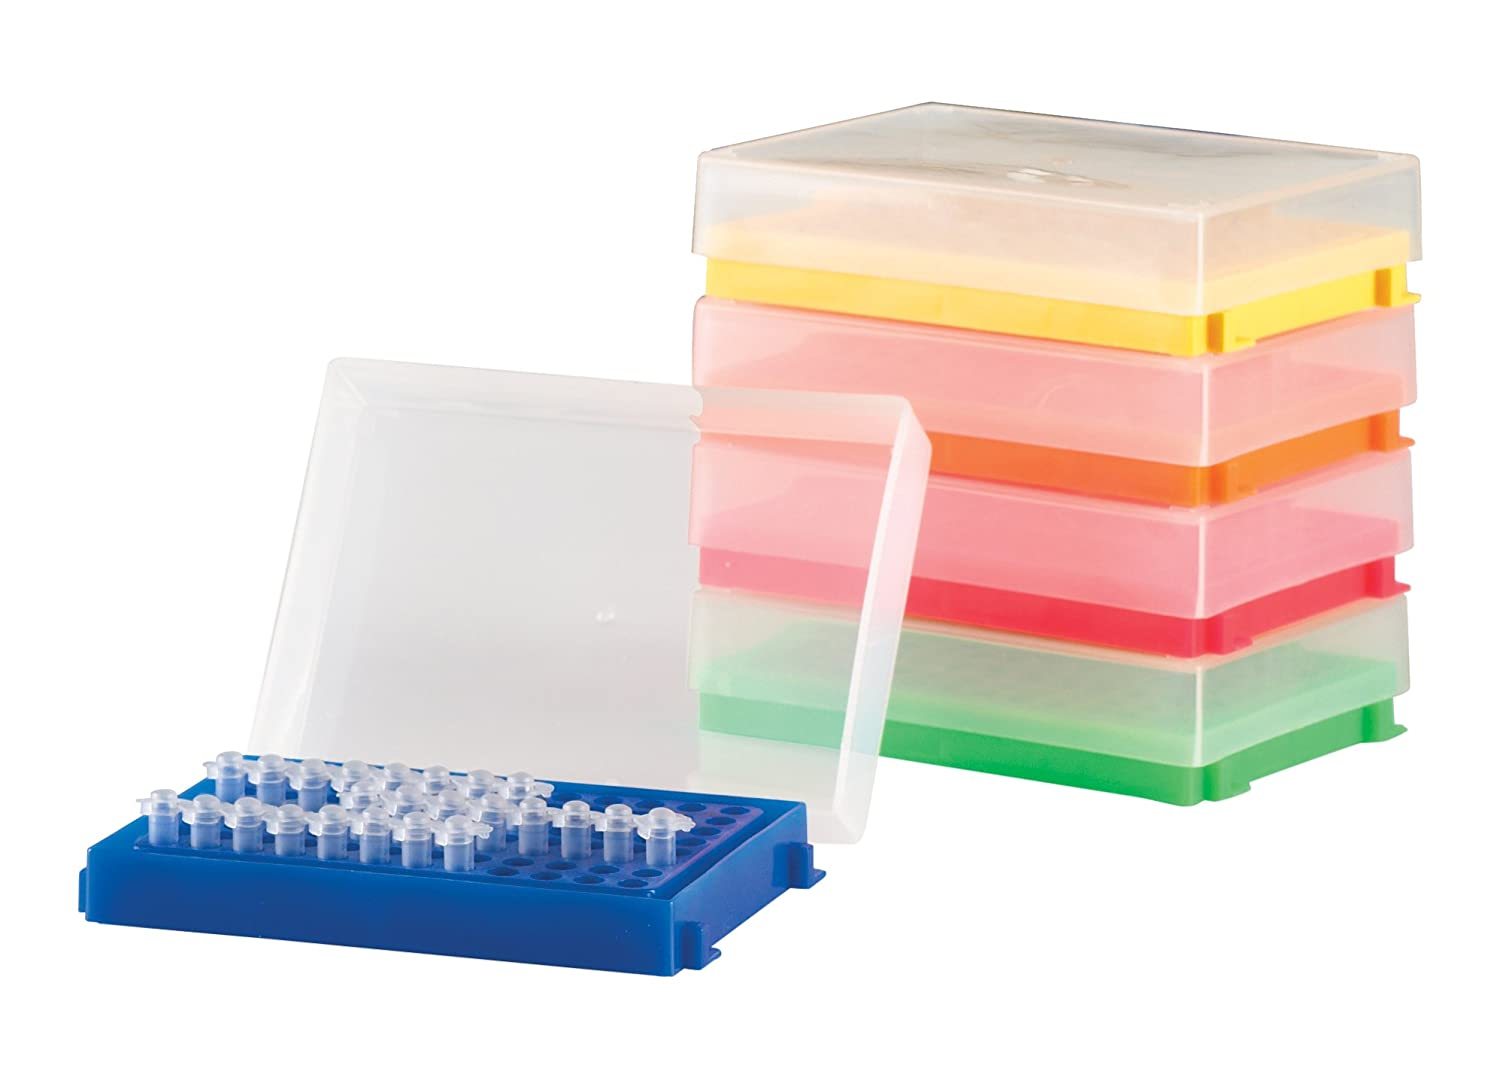 Pack of 5 Assorted Colours 96 Well Heathrow Scientific HD23461A PCR Rack Polypropylene 130mm Length x 98mm Width x 33mm Height